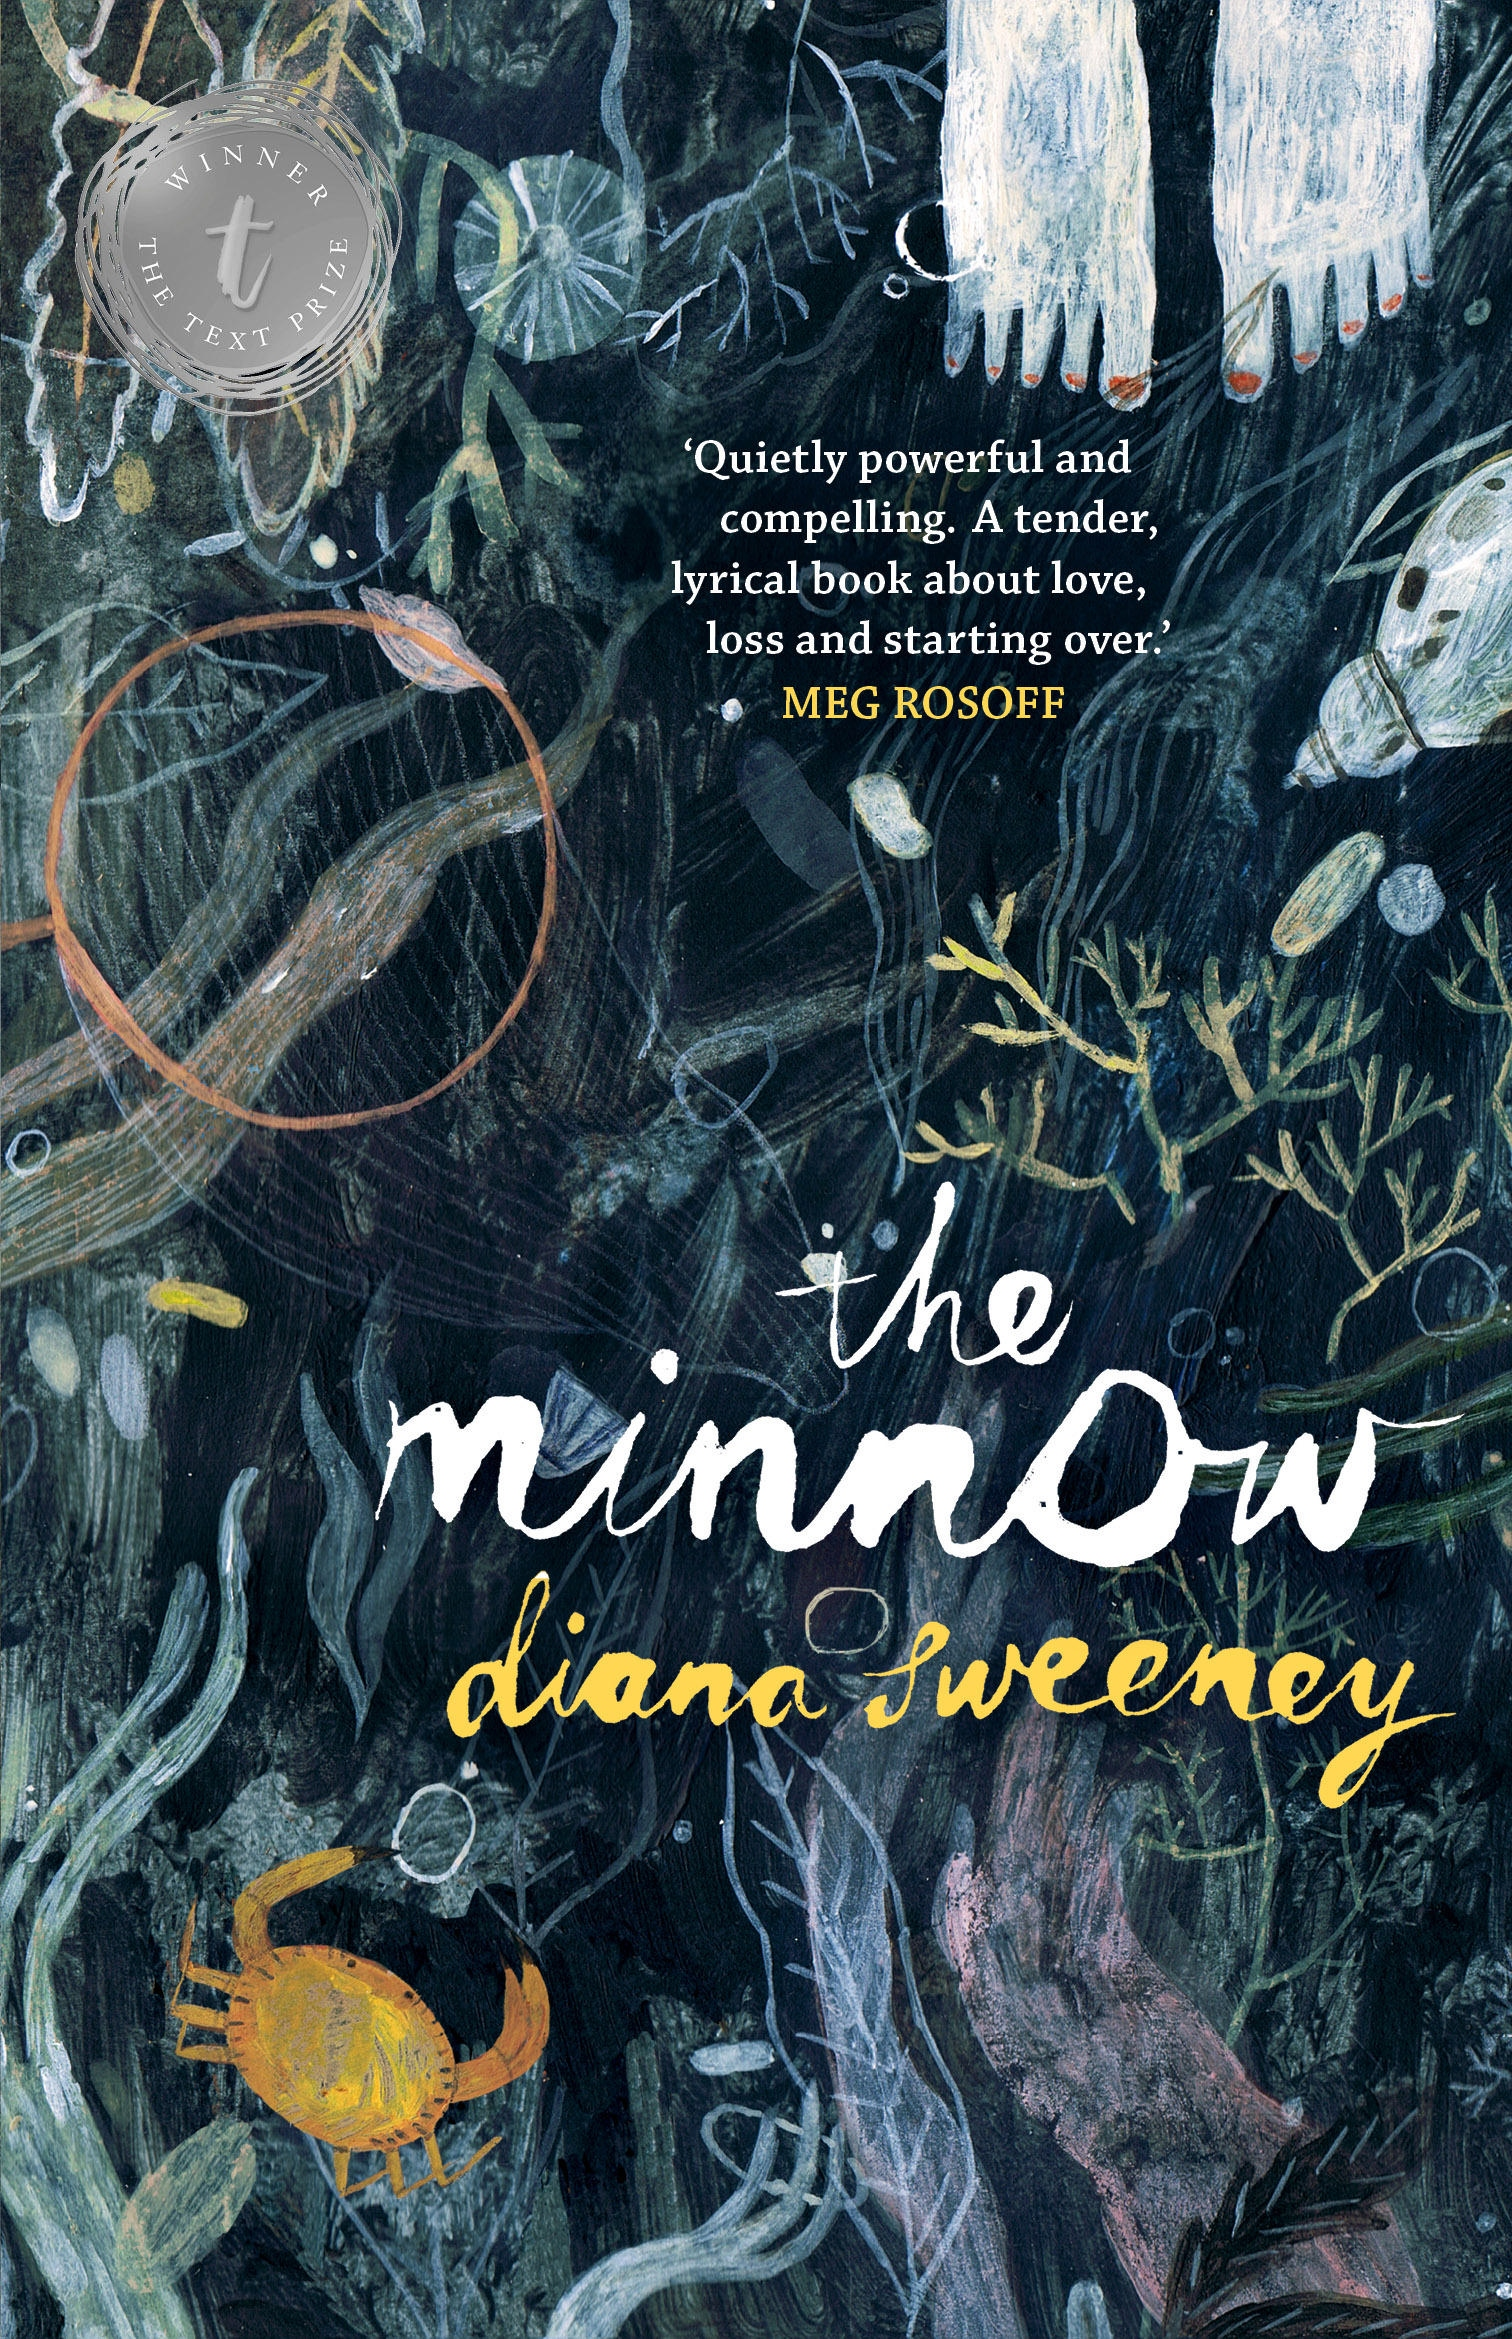 Cover Art for The Minnow, ISBN: 9781922182012